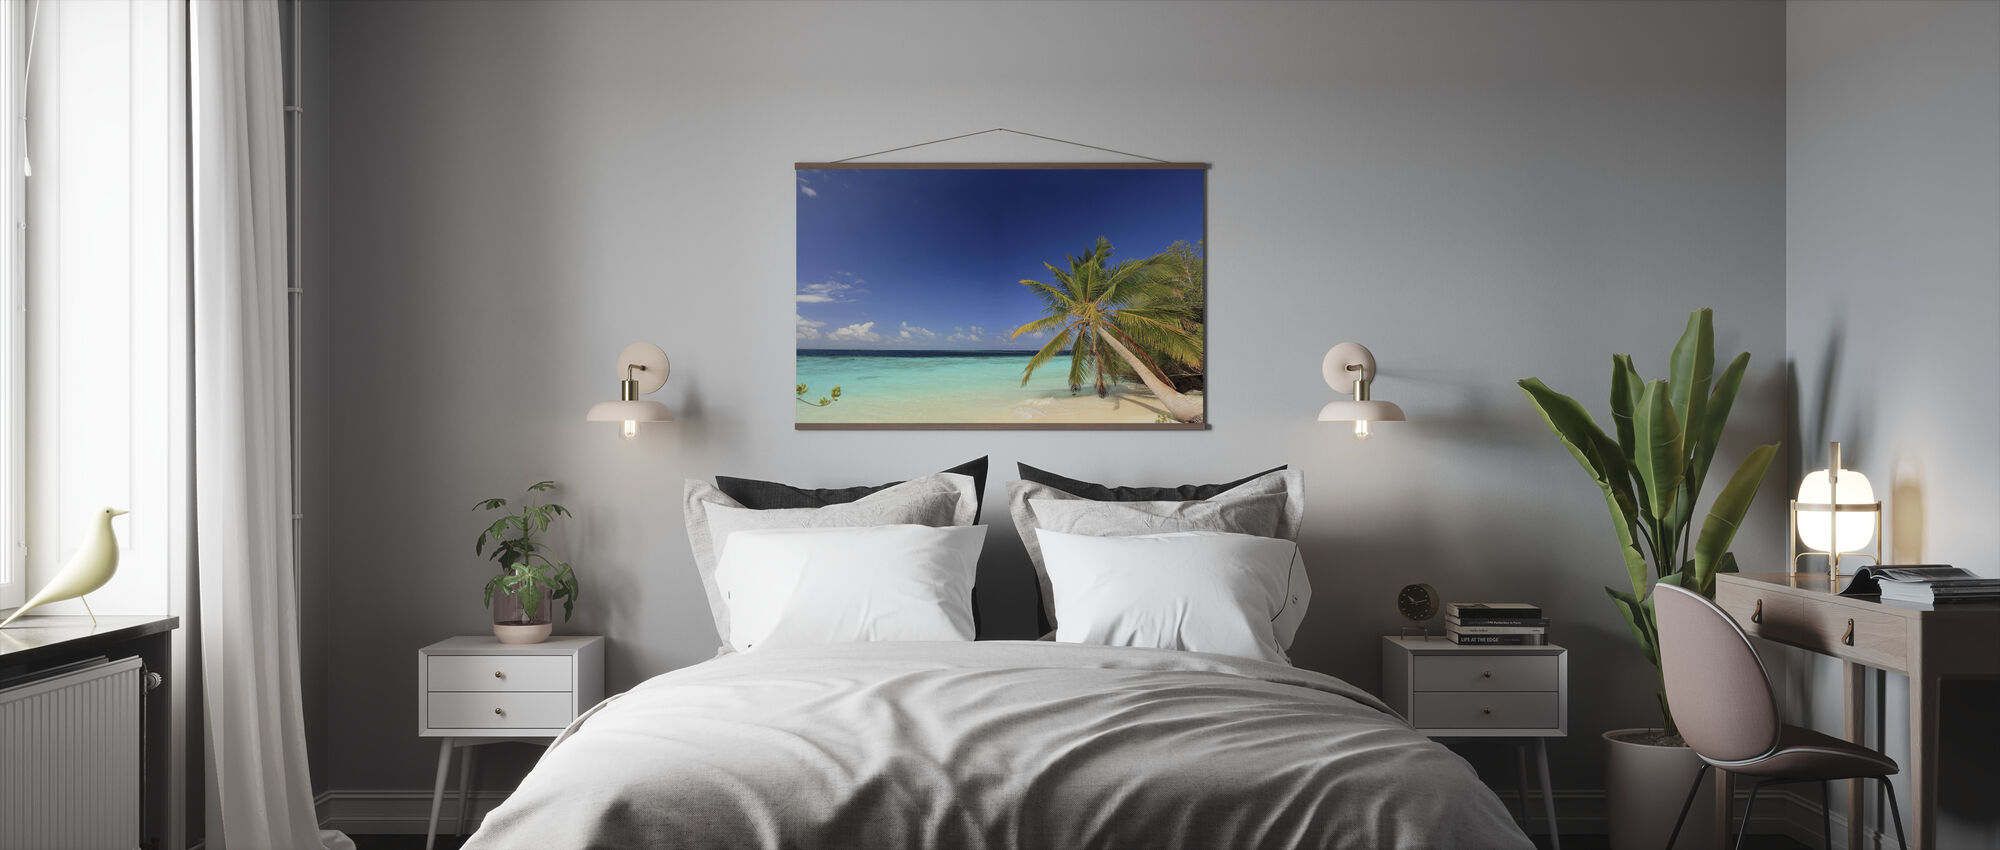 Beach Harmony - Poster - Bedroom